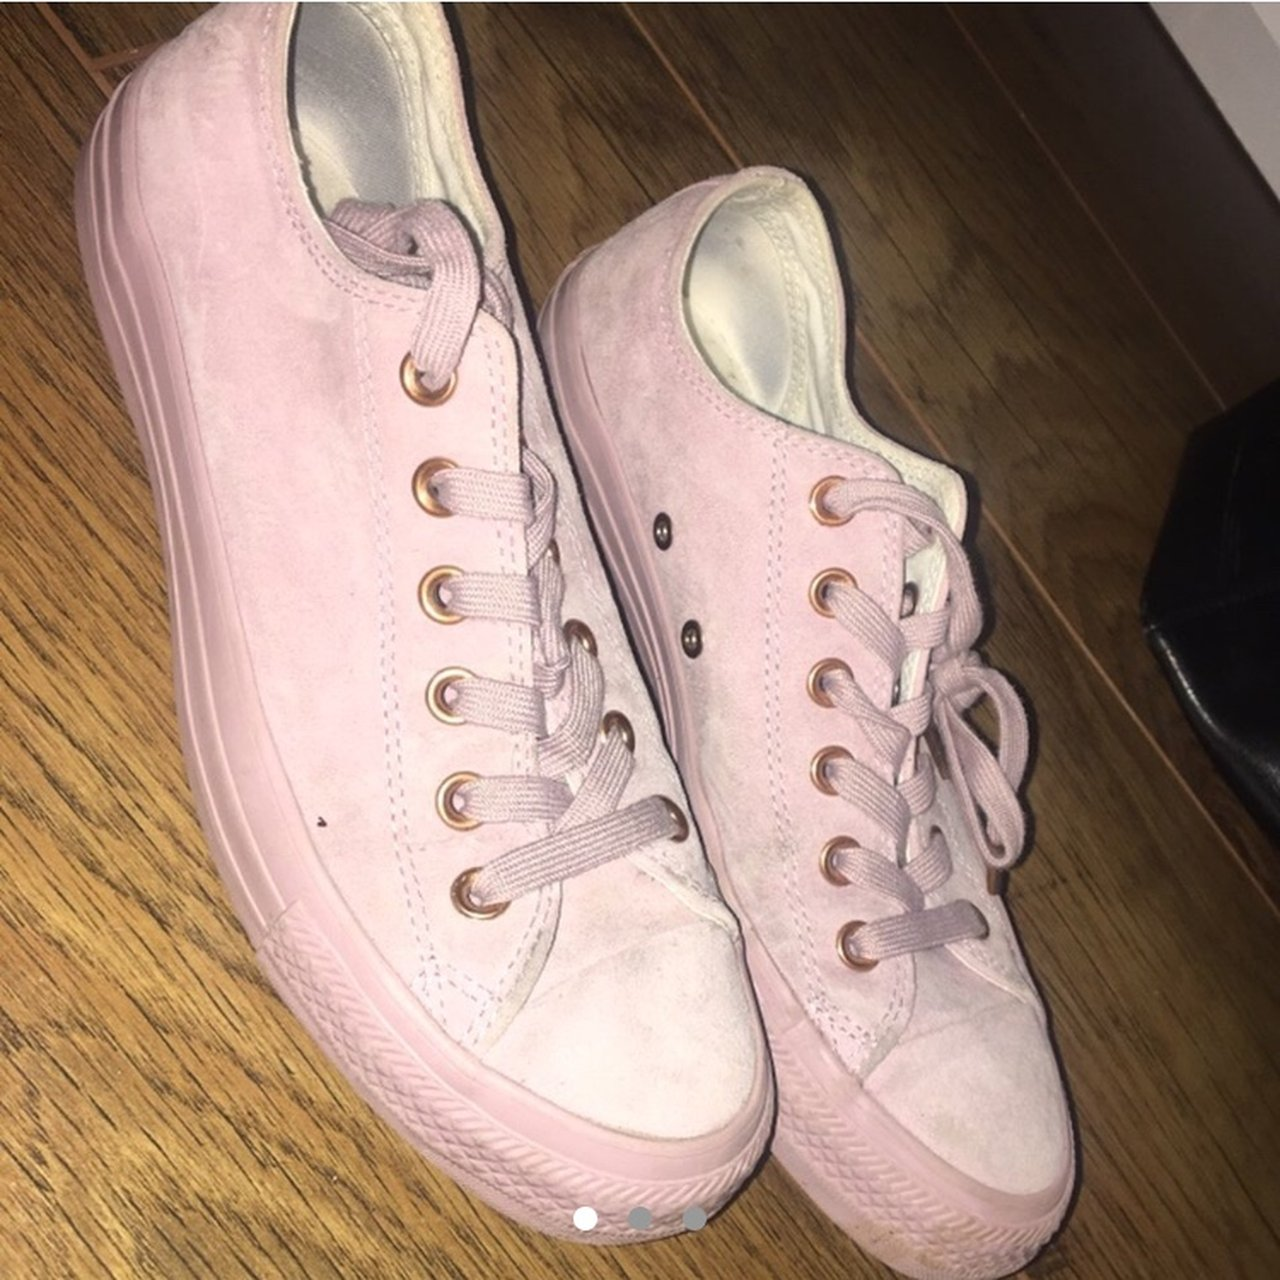 8362cc2e1dfd Converse pink suede edition with rose gold details. Size 6. - Depop